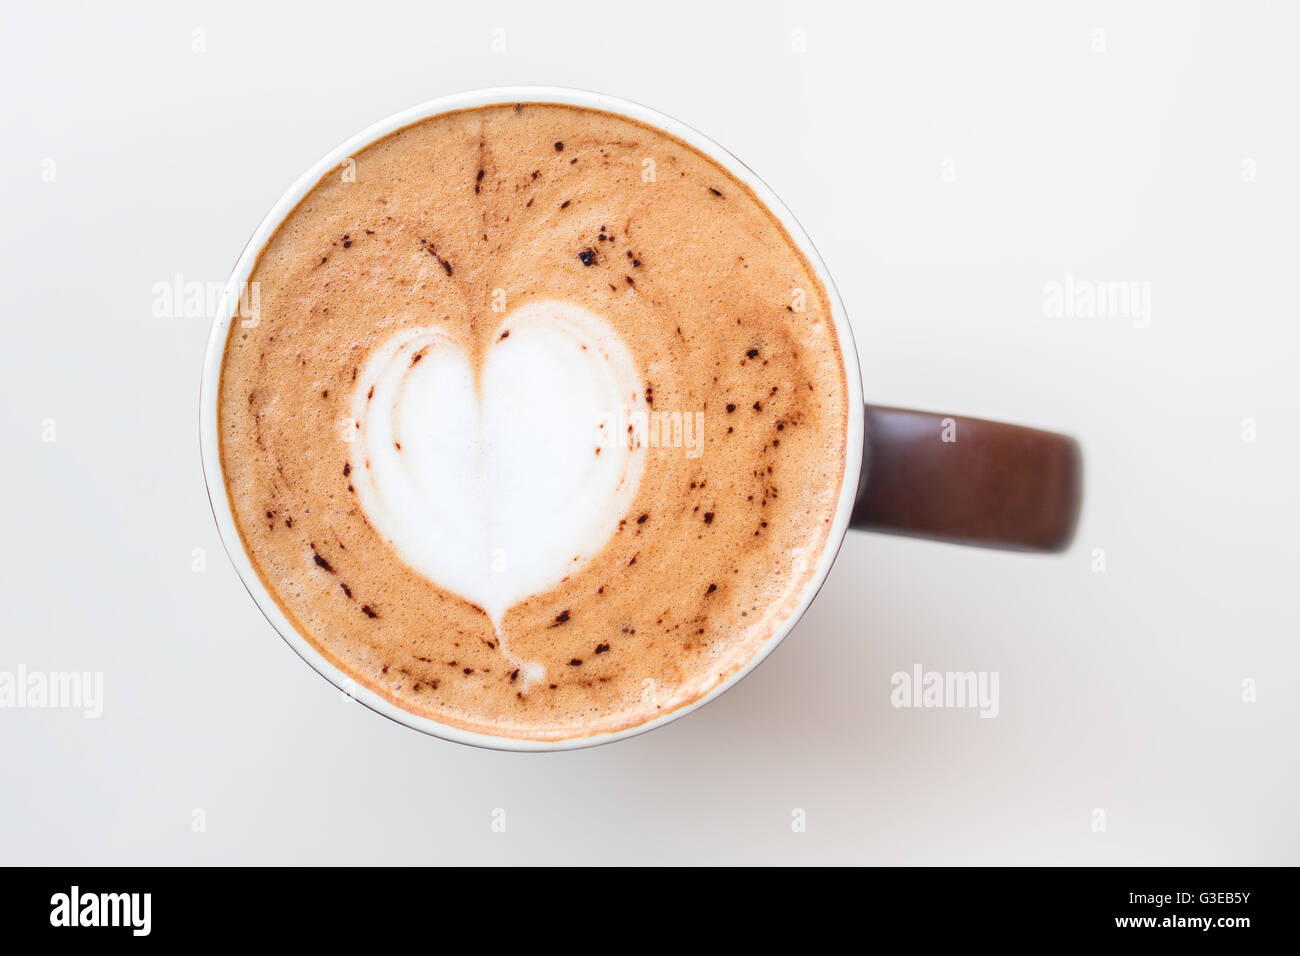 Cup of cappuccino coffee with the milky foam on top in a heart shape viewed from above in a brown cup on white table - Stock Image